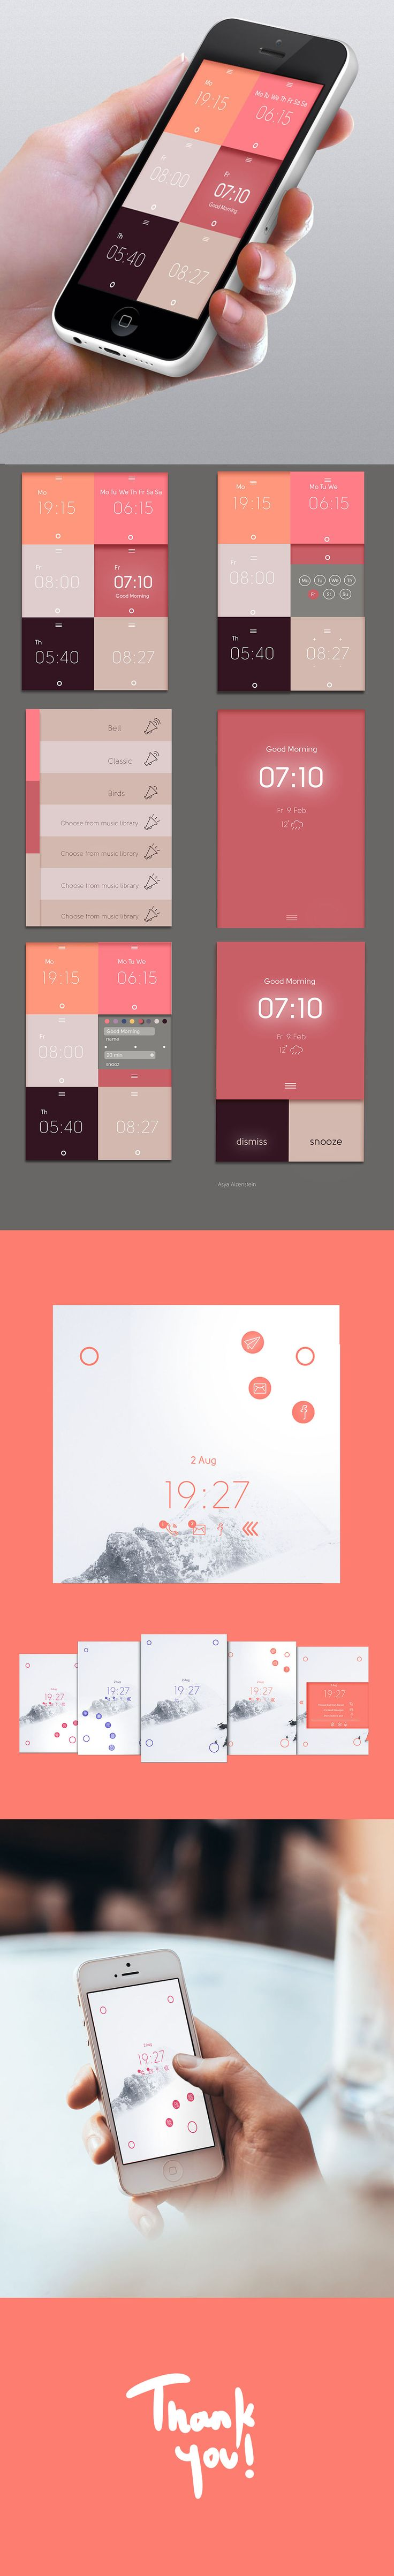 fresh weekly alarm clock design